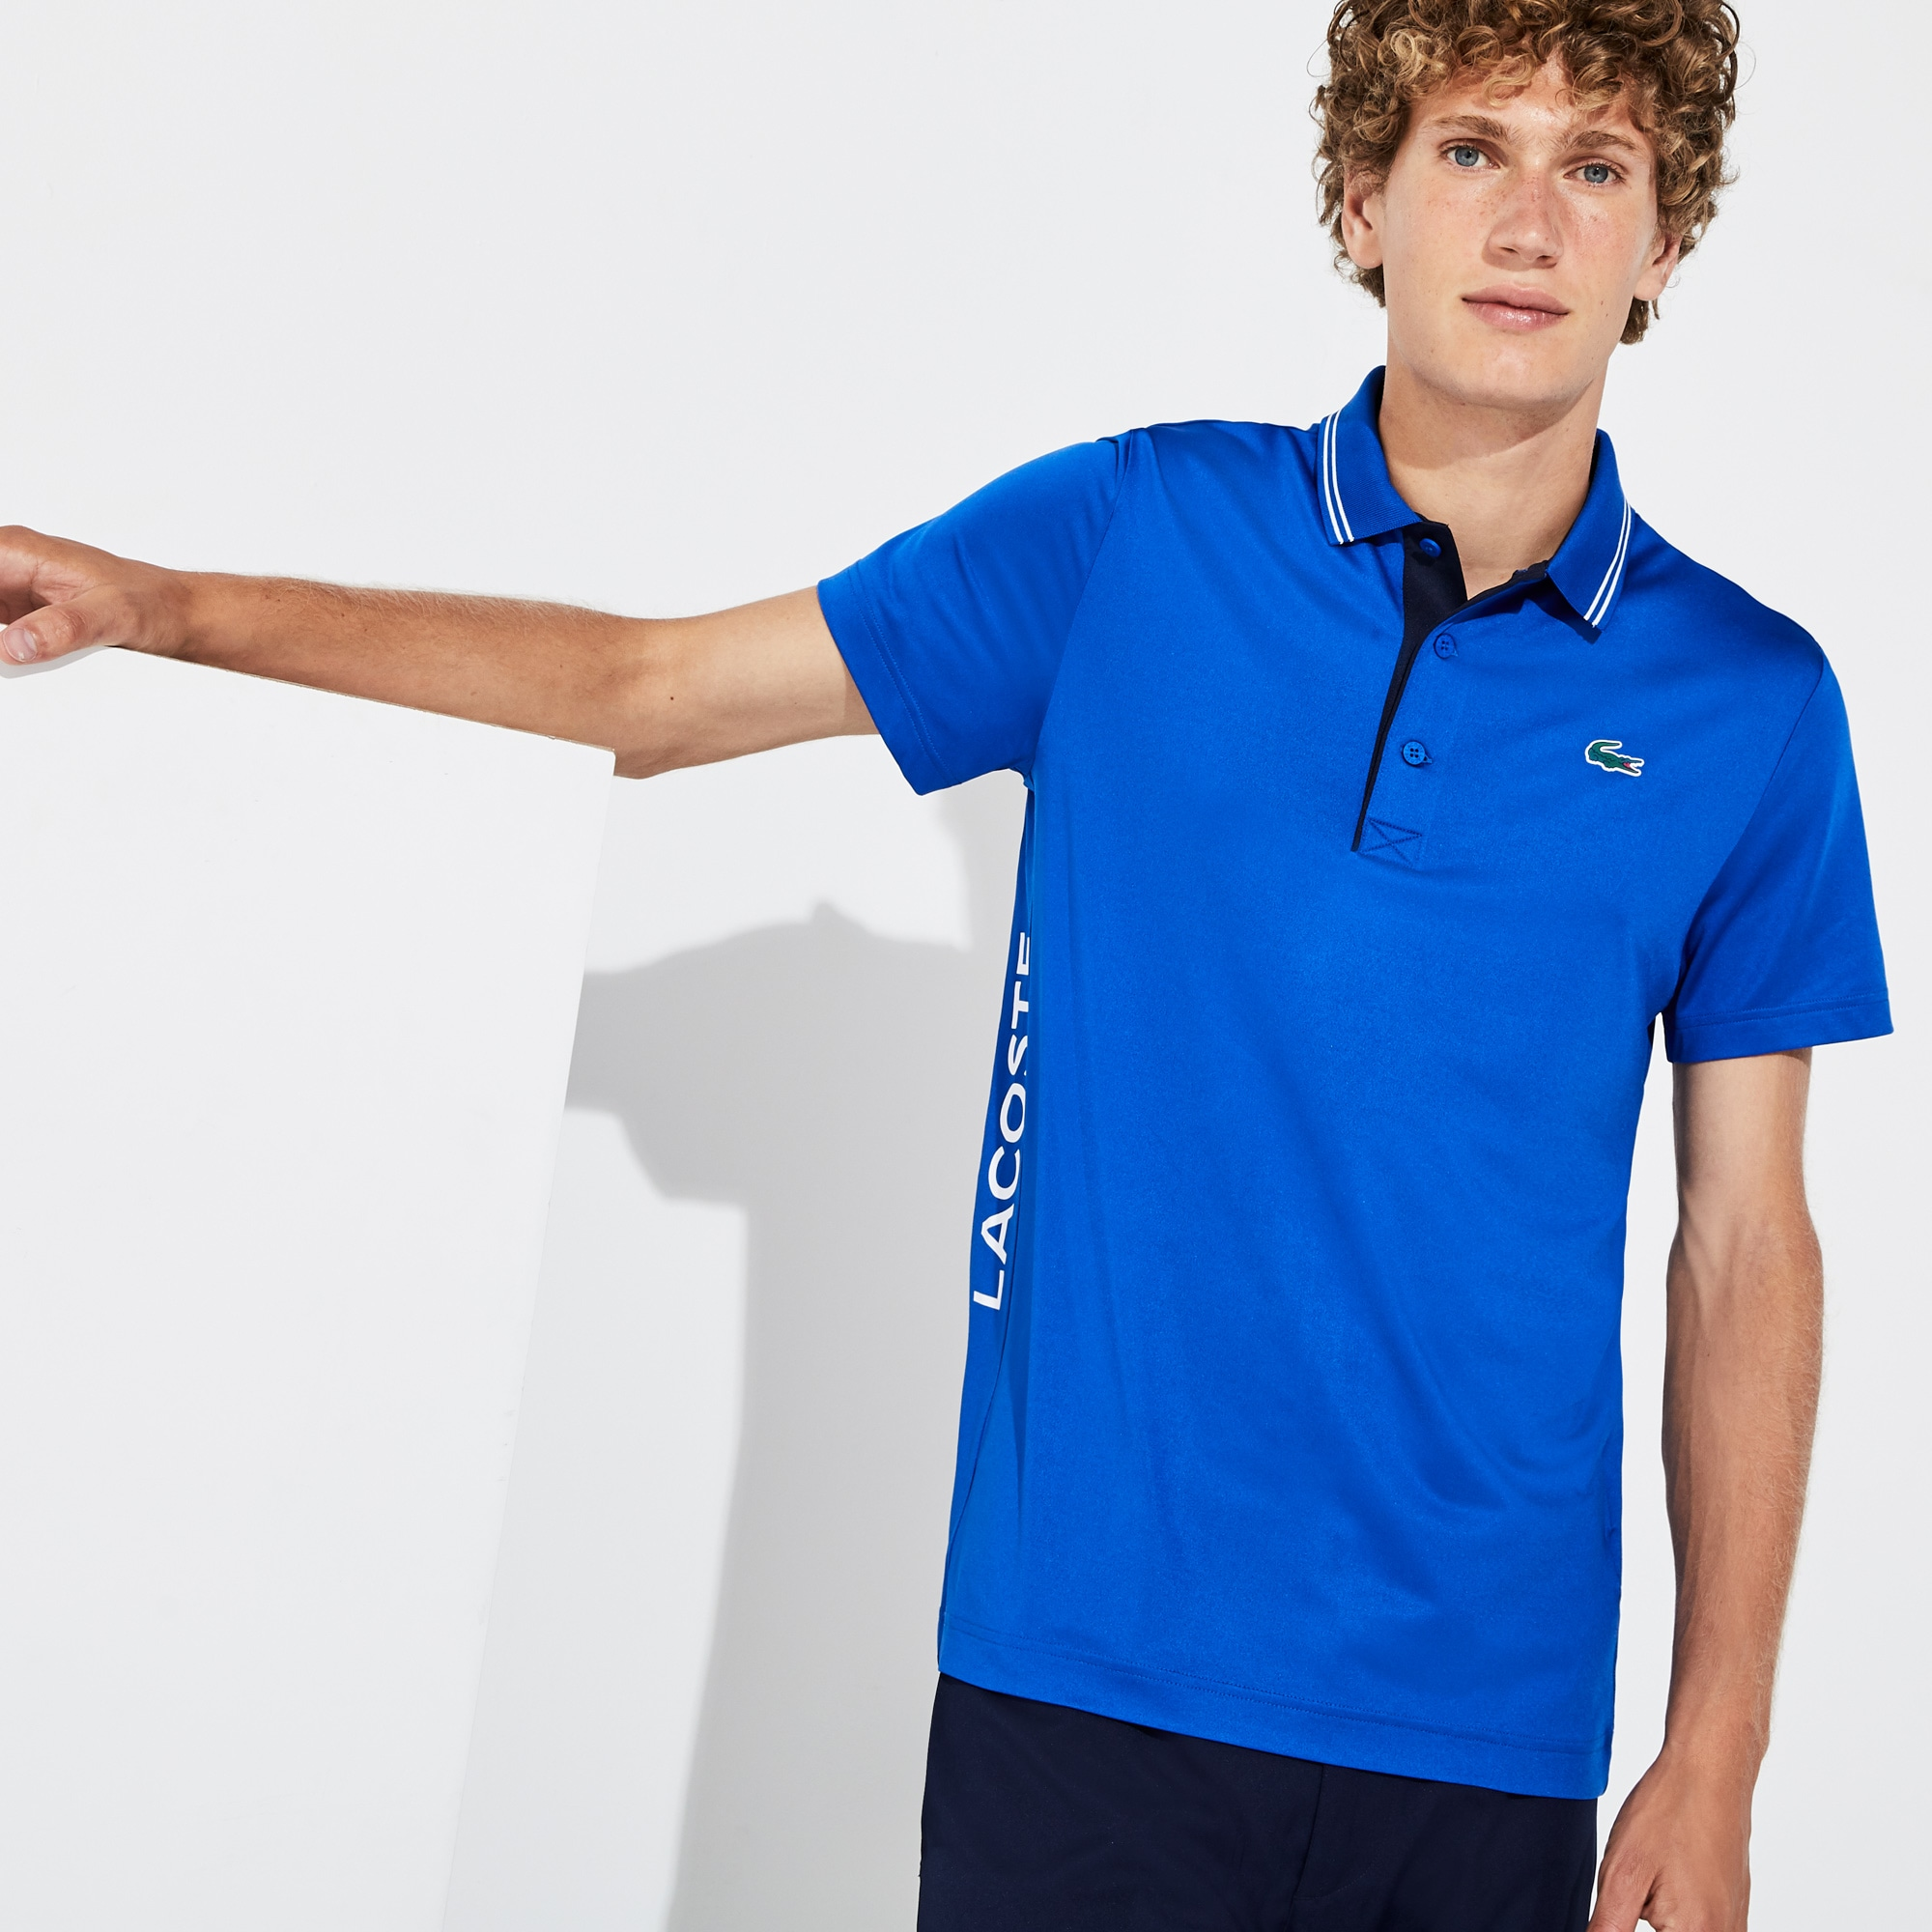 Men's SPORT Breathable Stretch Jersey Golf Polo